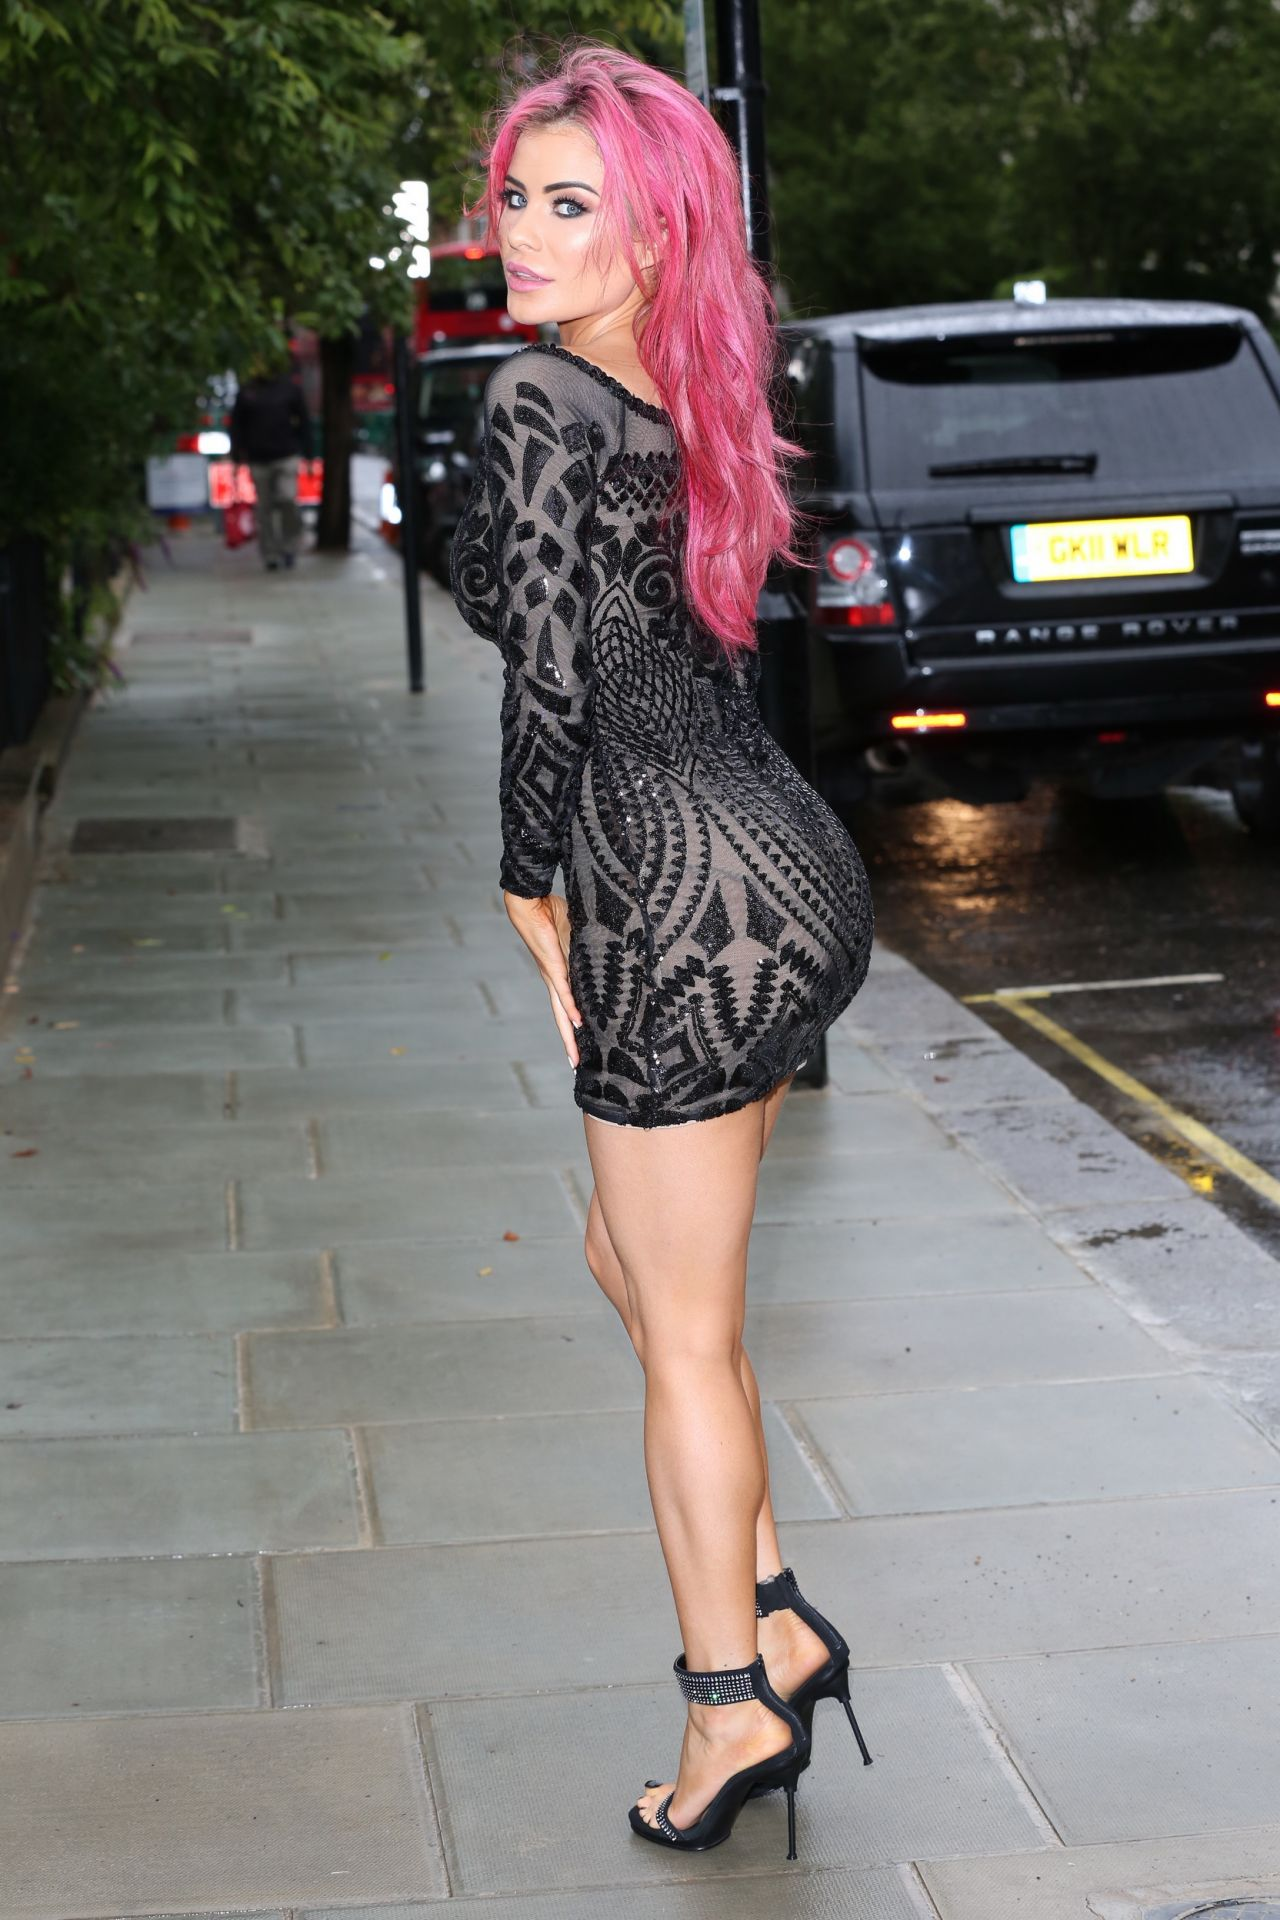 Discussion on this topic: Teresa palmer new sexy photos, carla-howe-in-mini-dress-atomic-blonde/